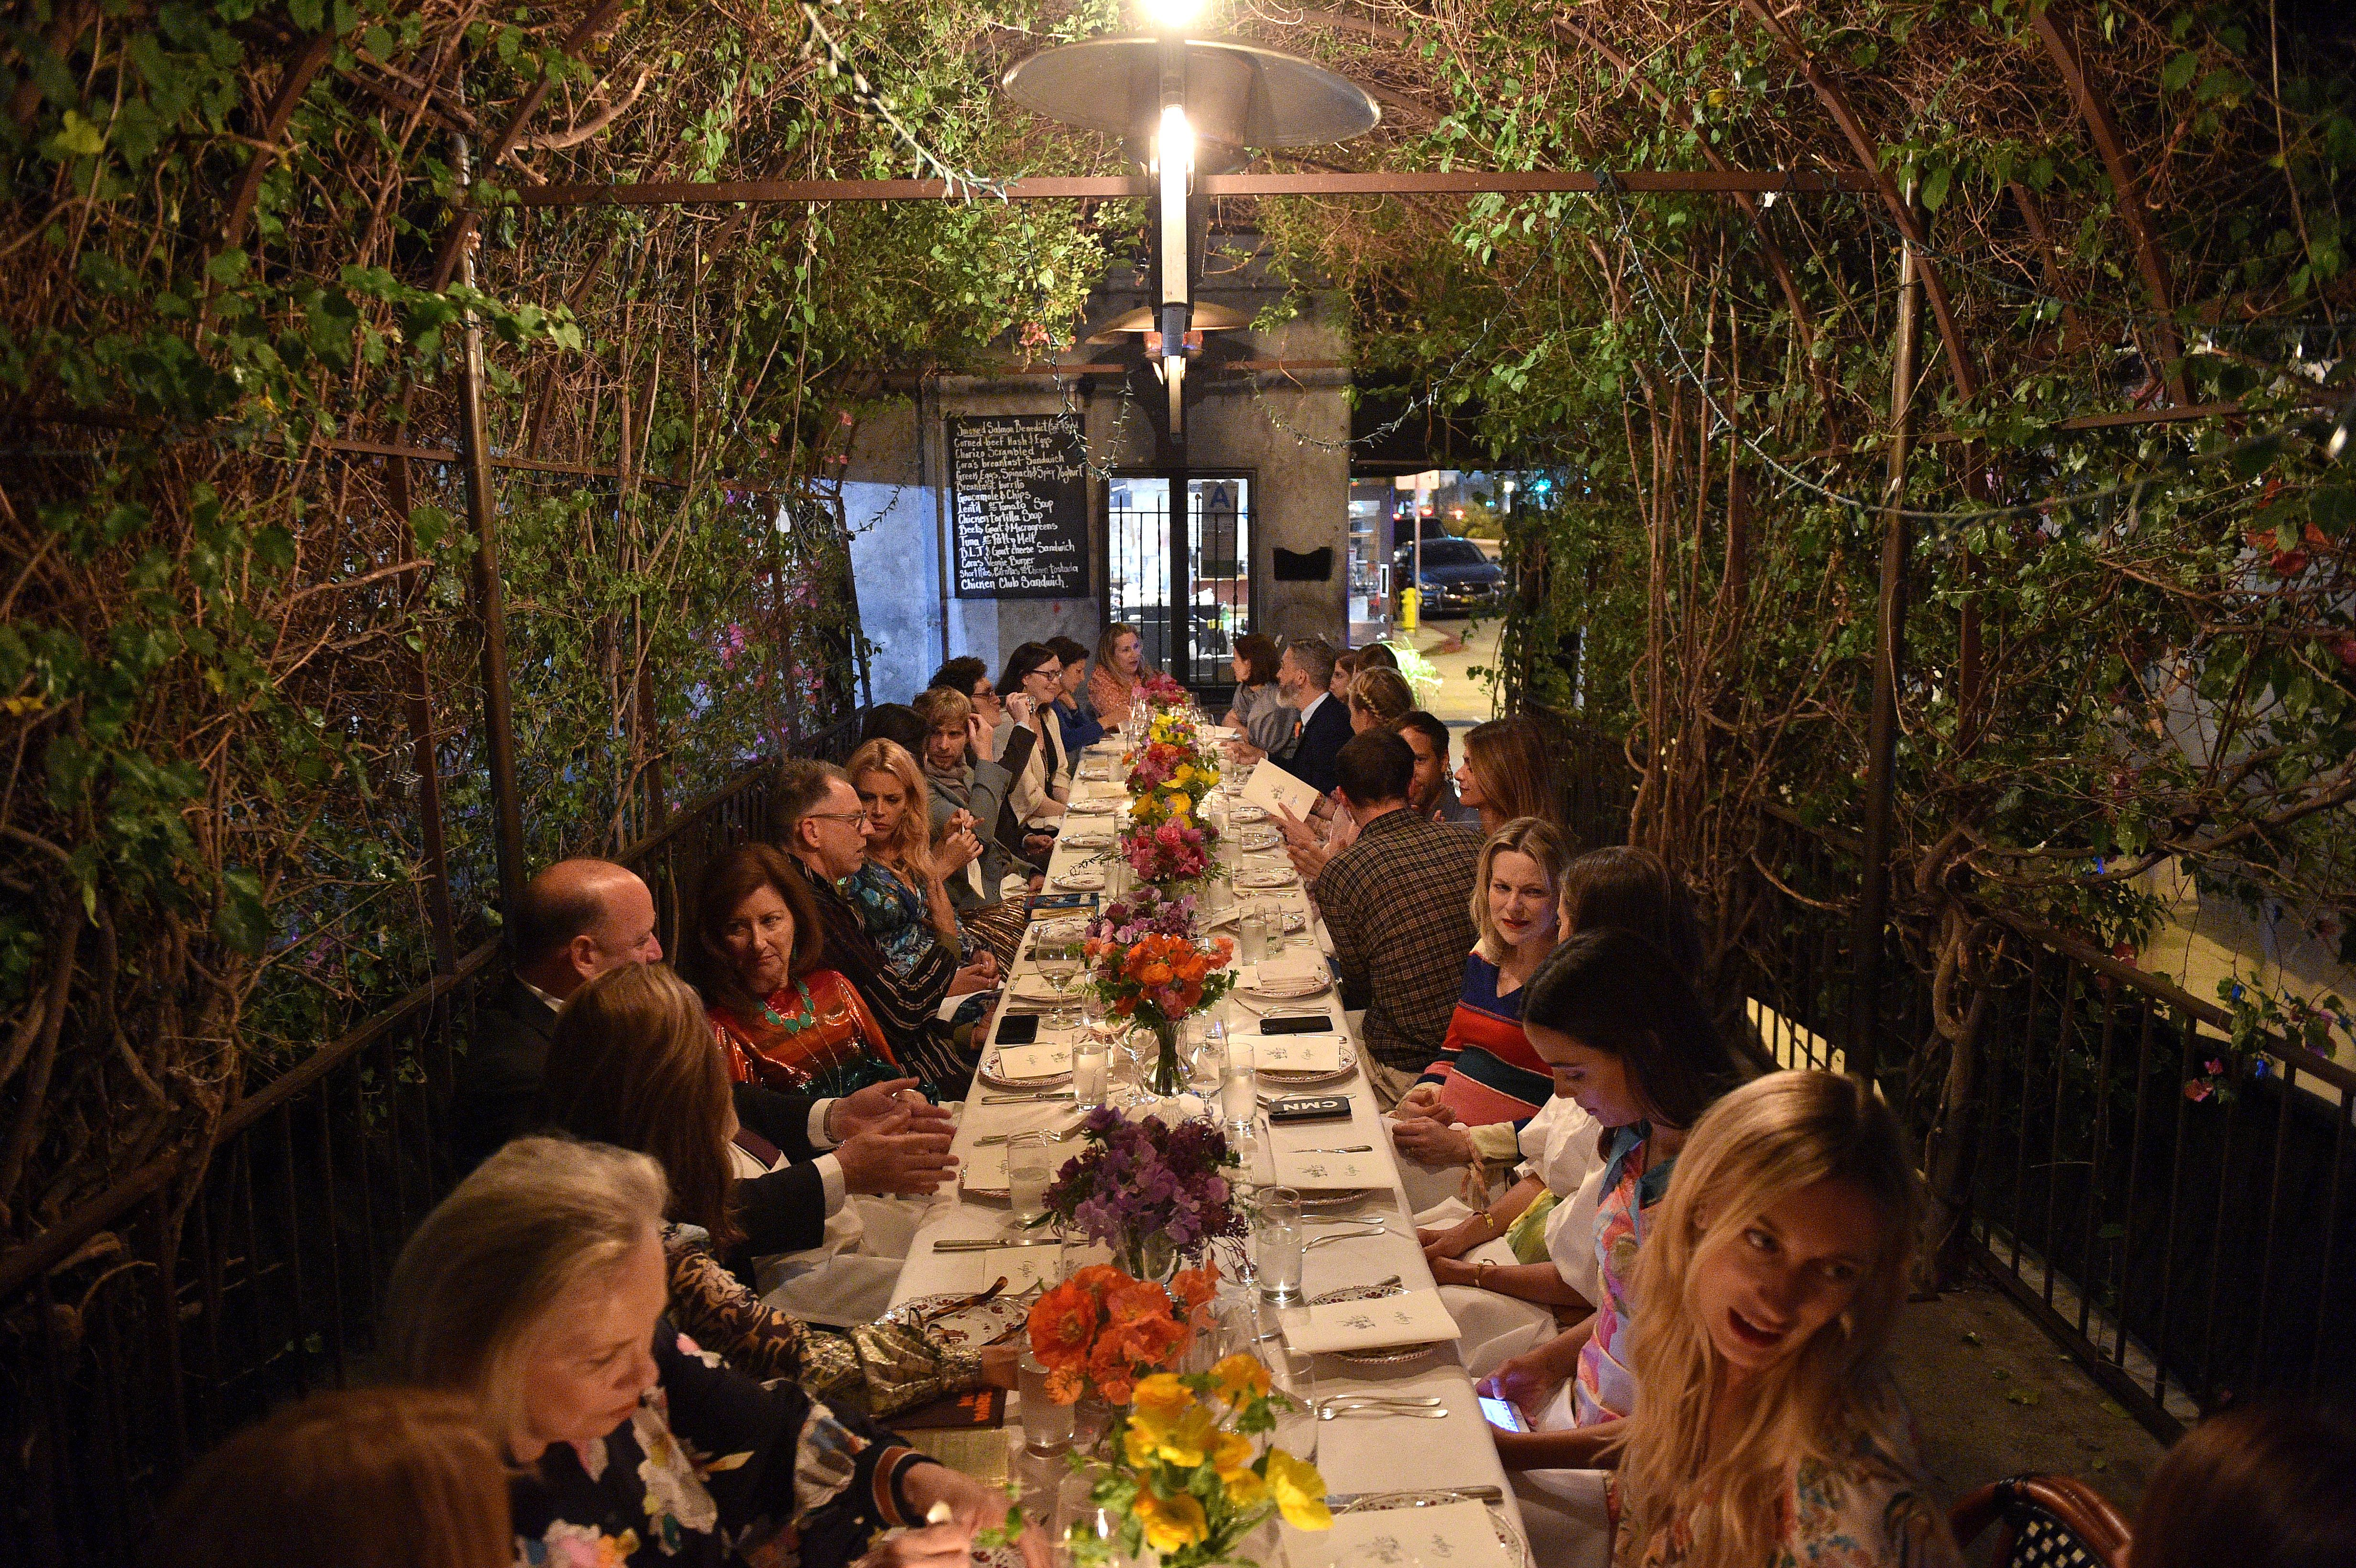 Atmosphere Intimate dinner following the Capitol & Irene Neuwirth Brentwood store opening, Los Angeles, USA - 25 Apr 2019